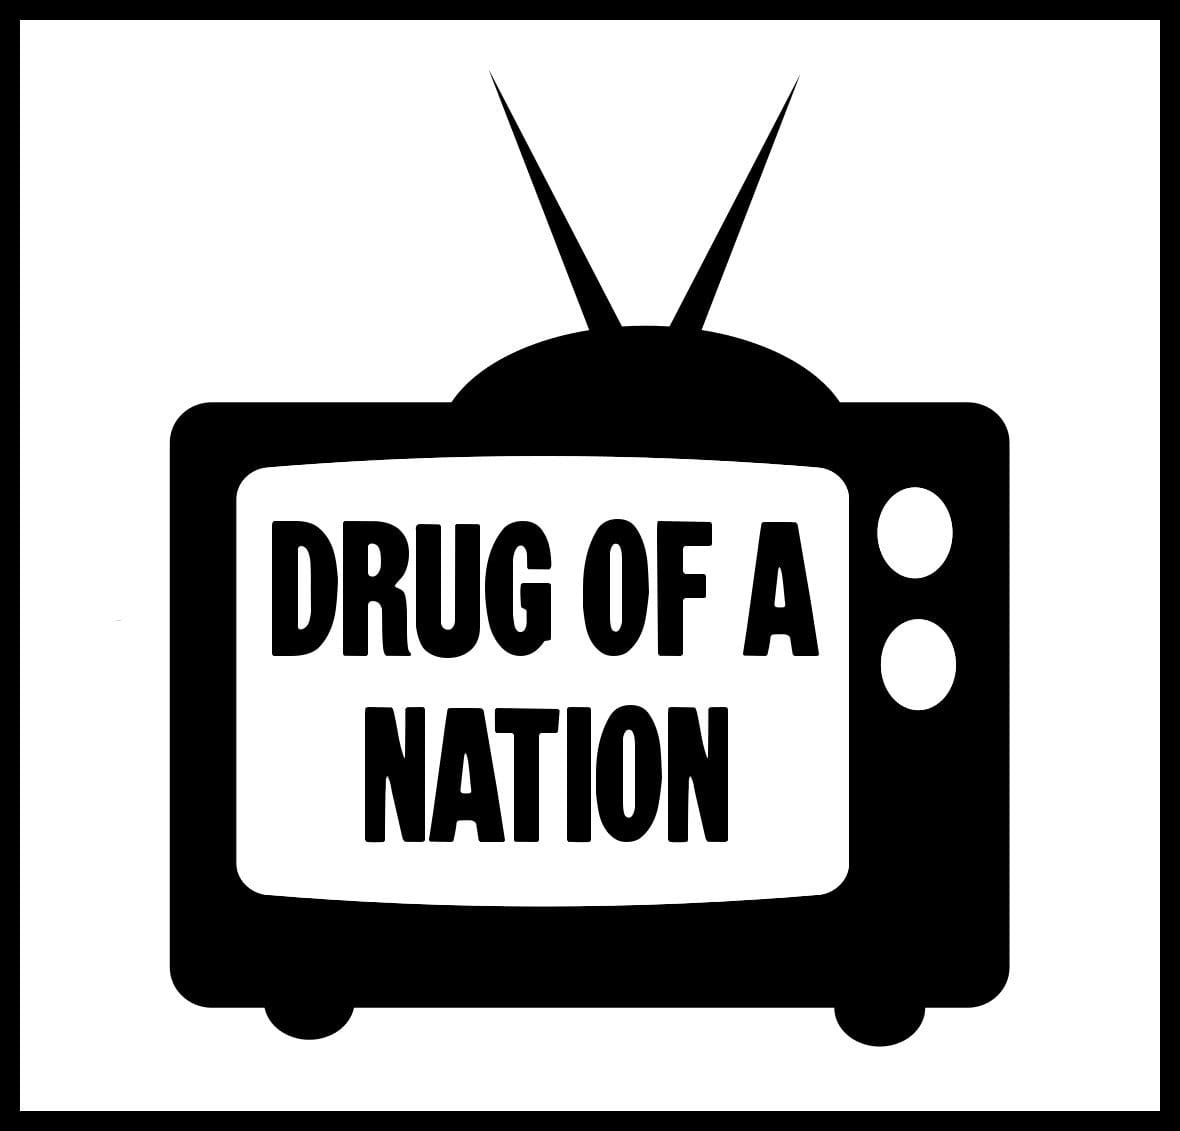 TV is the drug of the nation